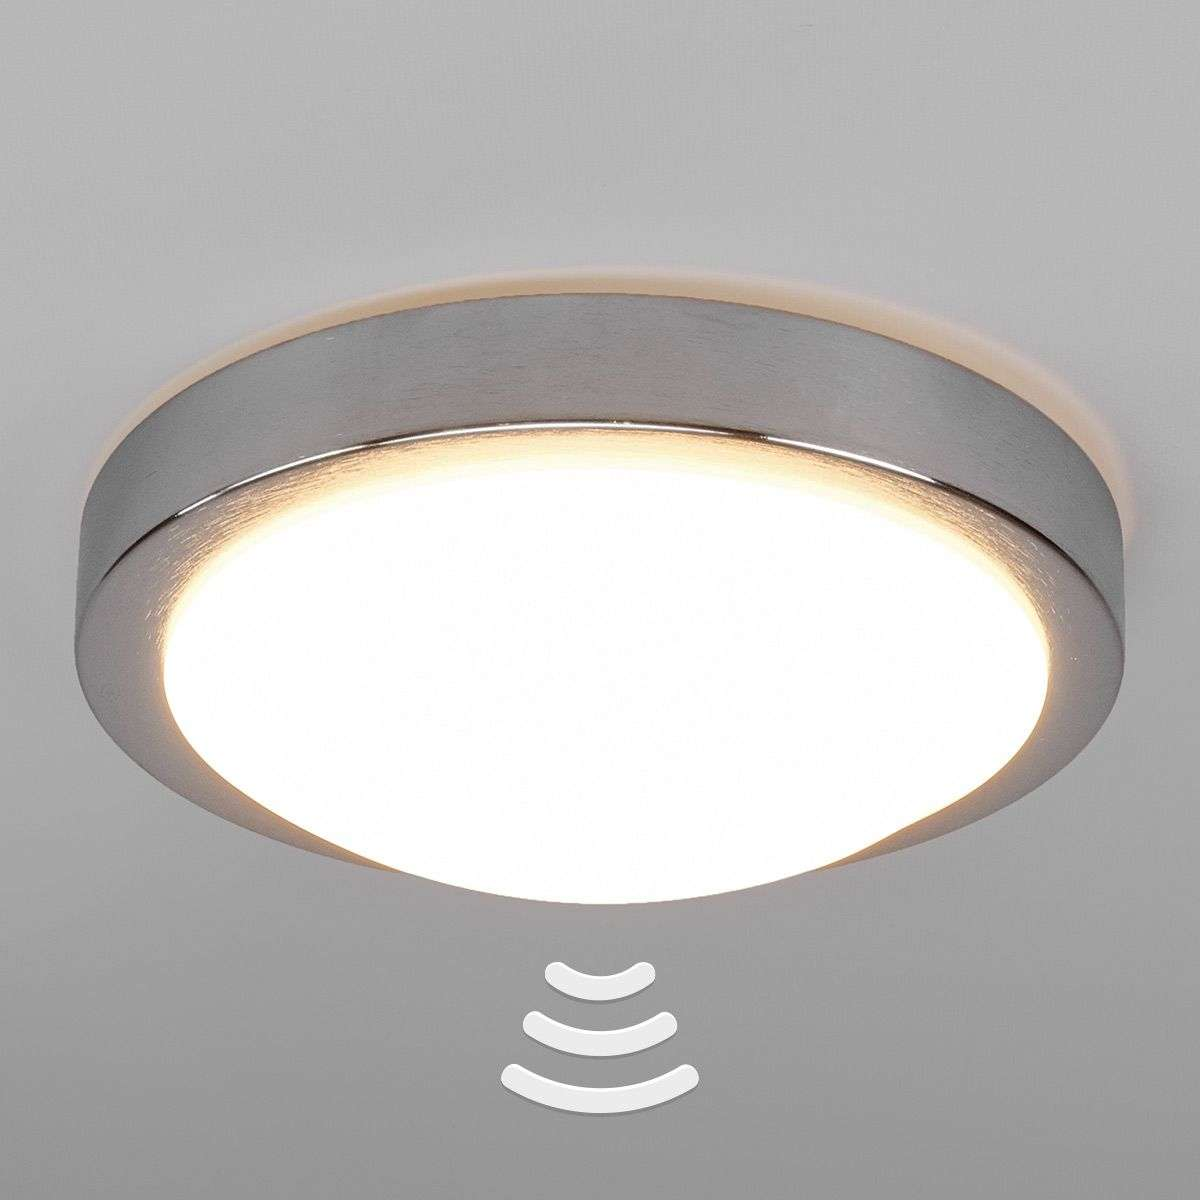 Compra l mpara techo led alum aras con sensor para ba o for Lamparas de pared para bano